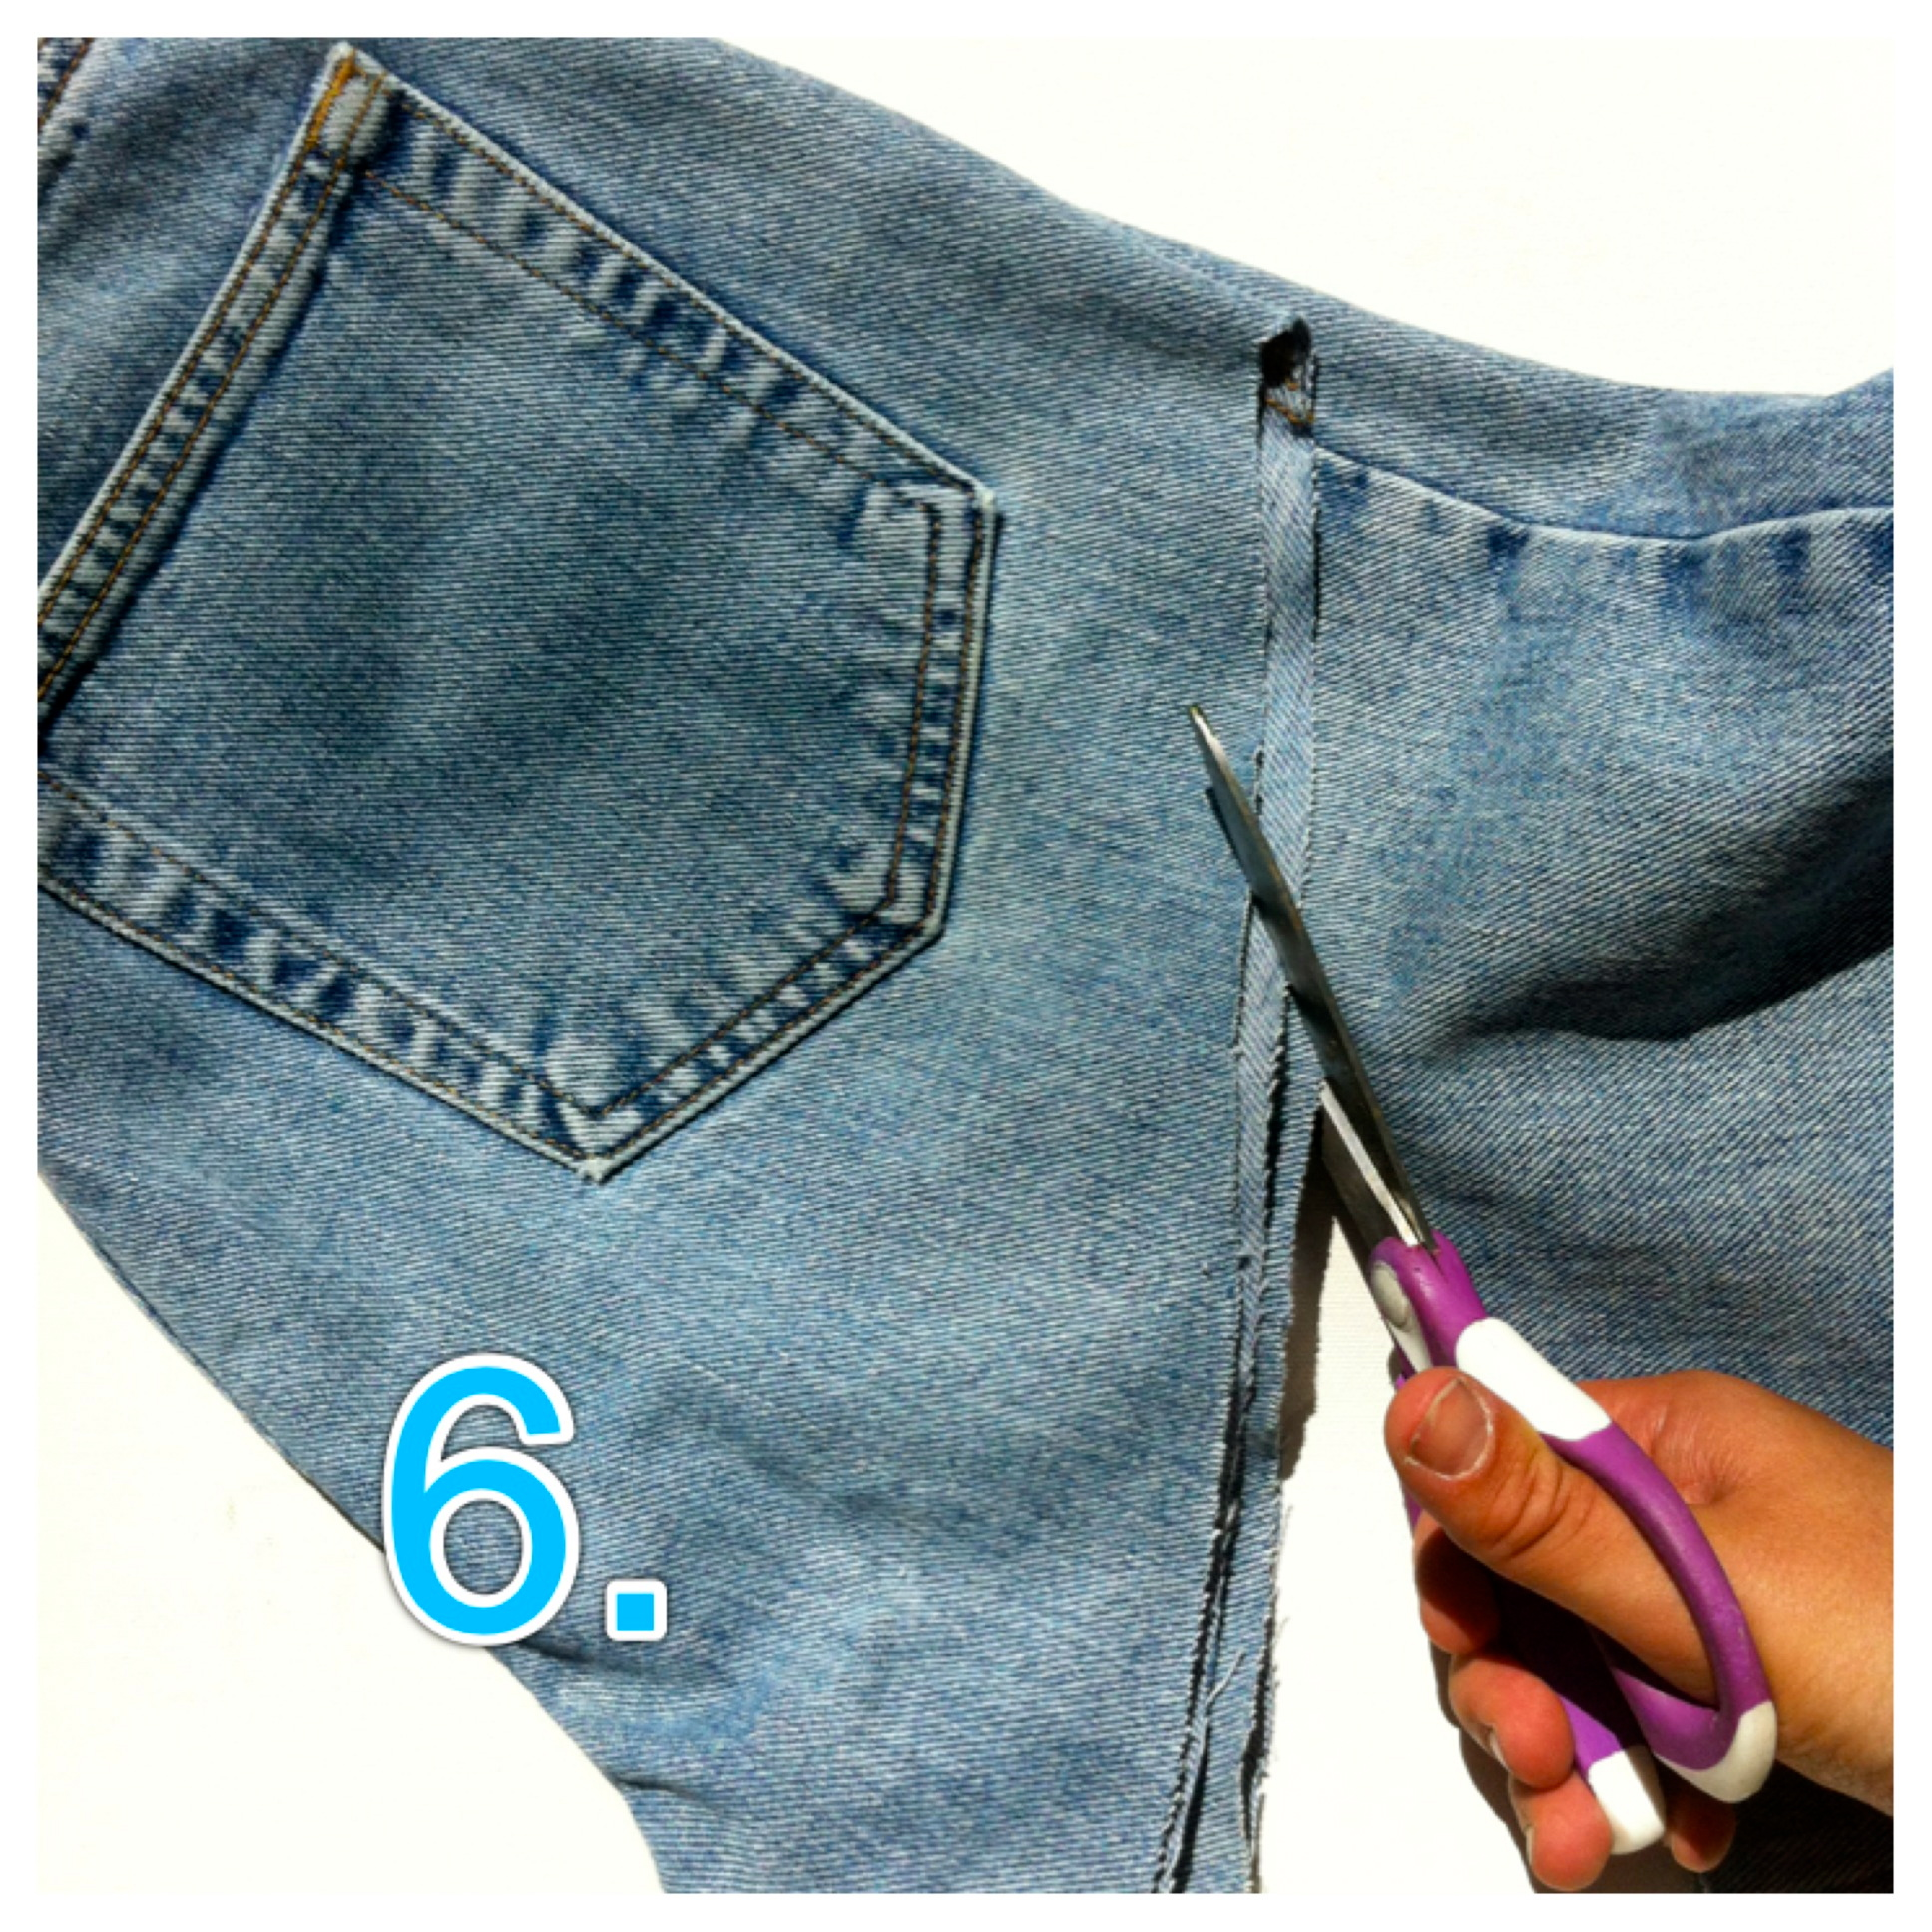 DIY High Waisted Denim Shorts, Step-by-Step Instructions (with ...